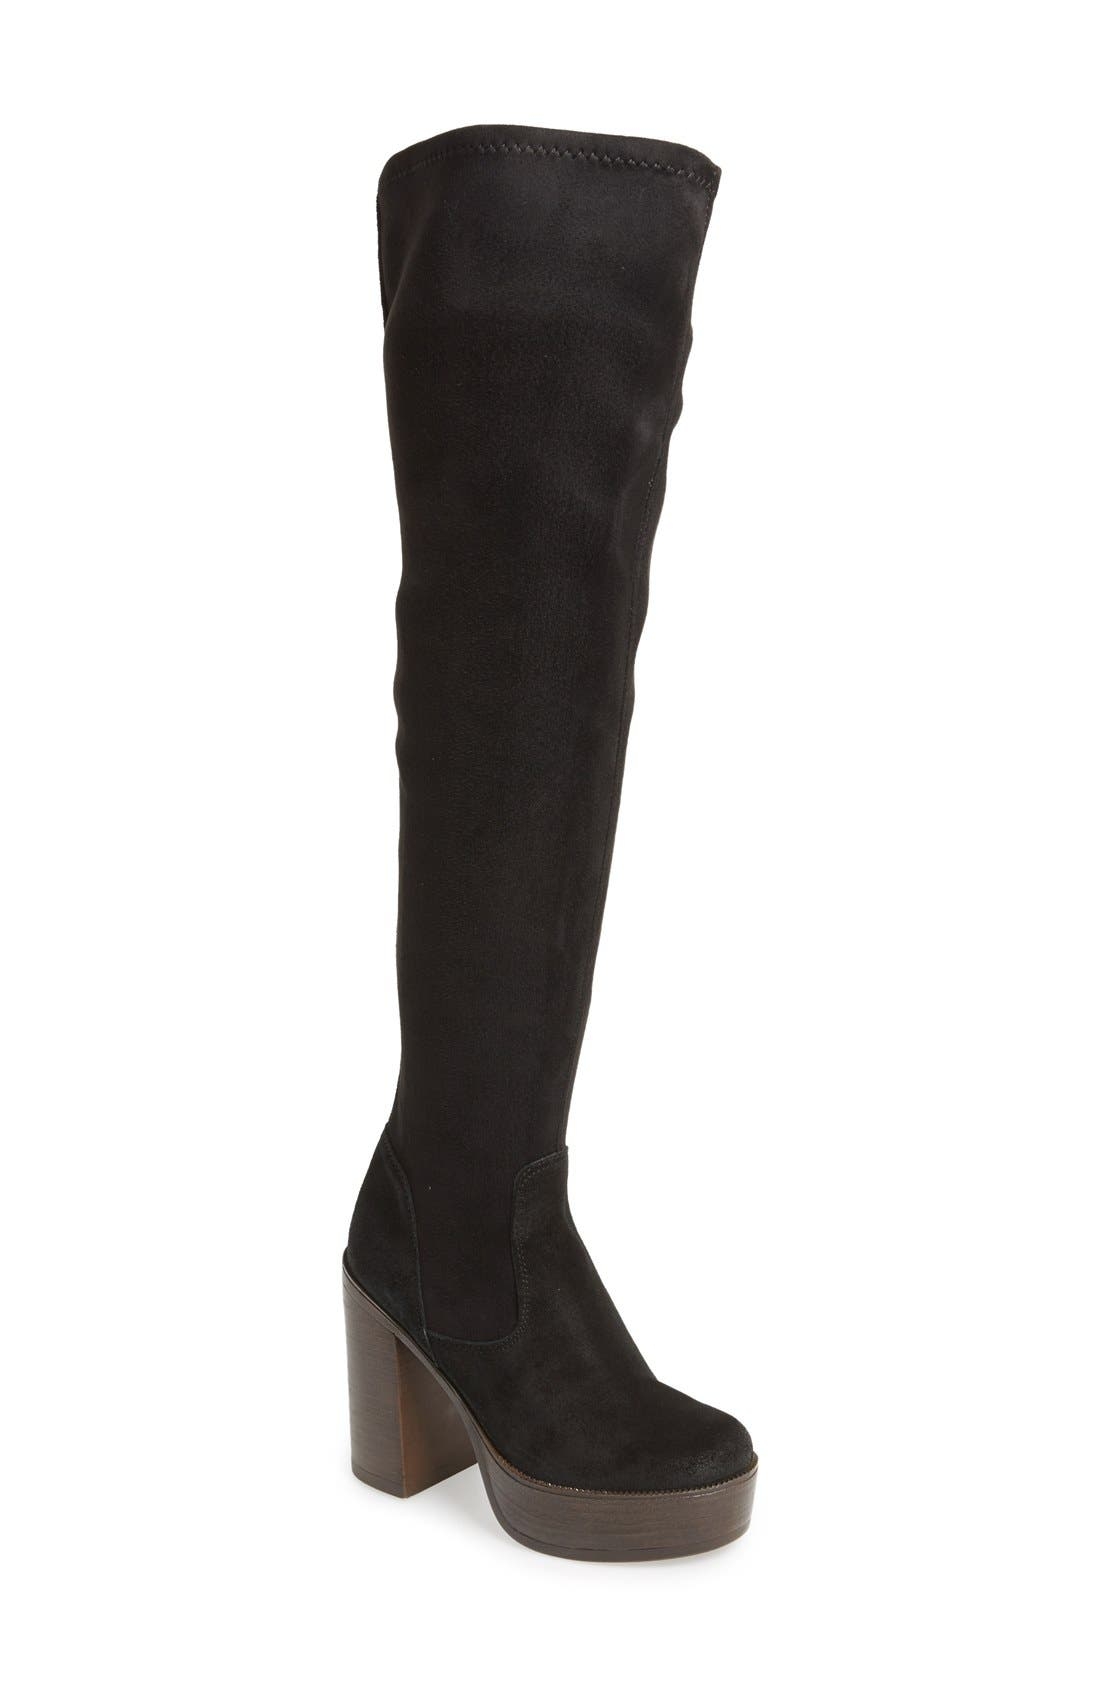 Main Image - Topshop'Buddy '70s' Over the Knee Boot (Women)